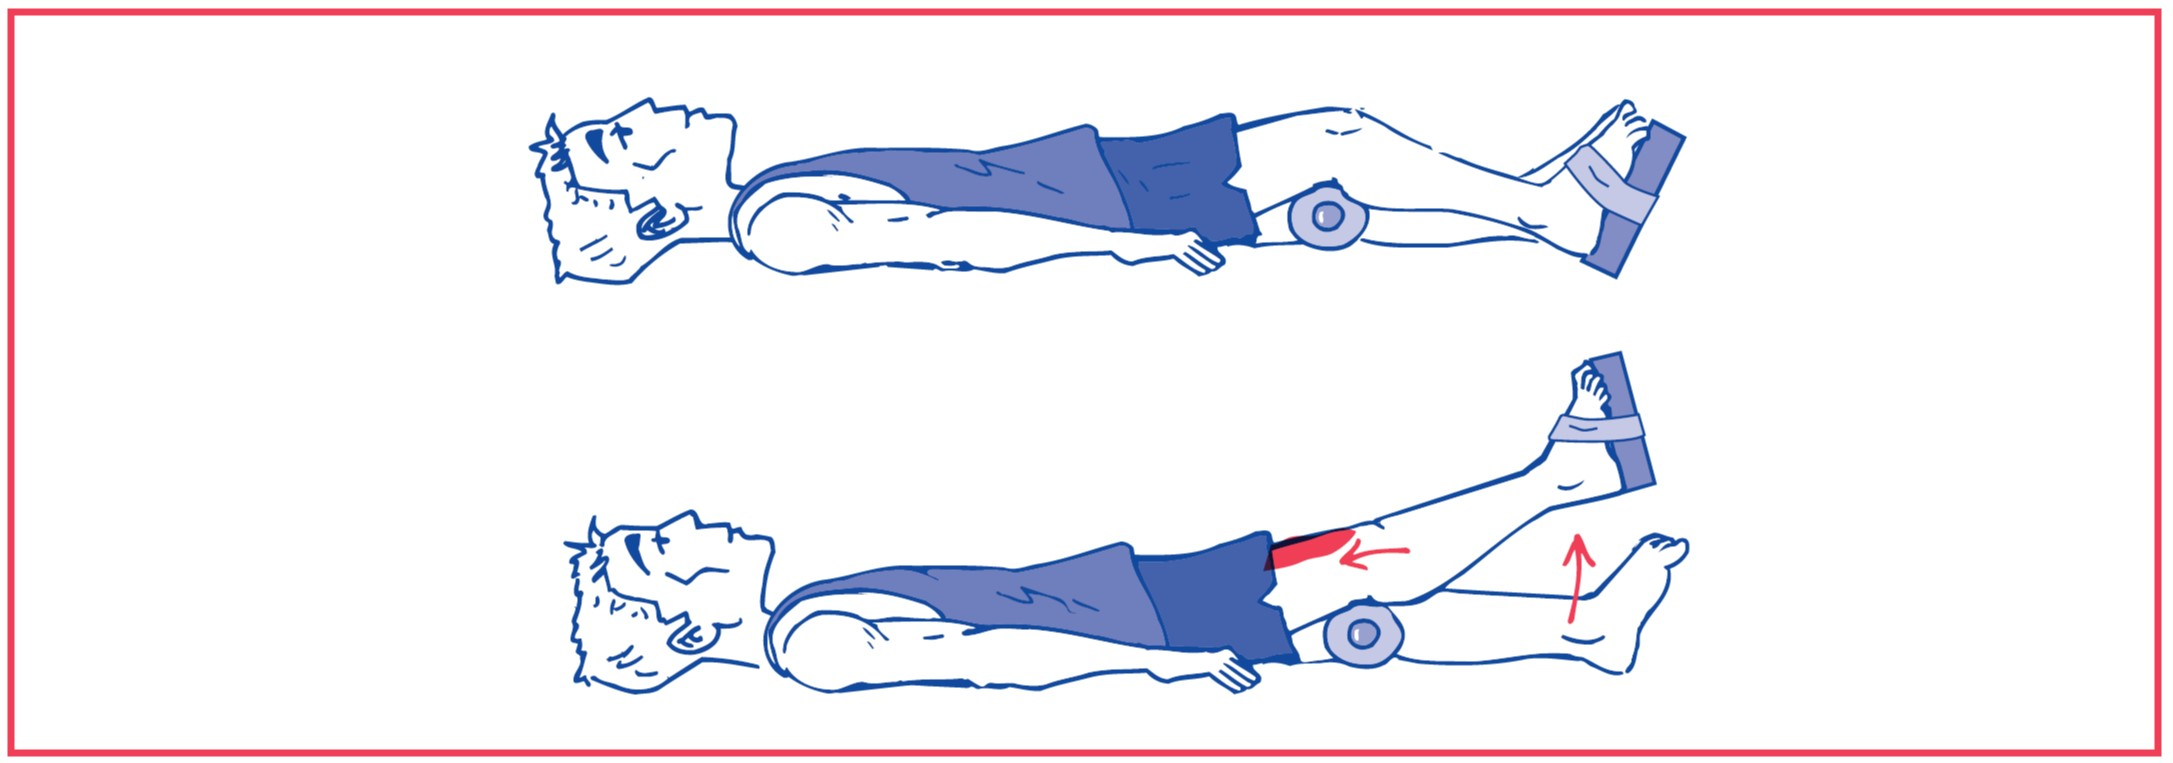 4. Knee extension against resistance (weights) with a small range of movement